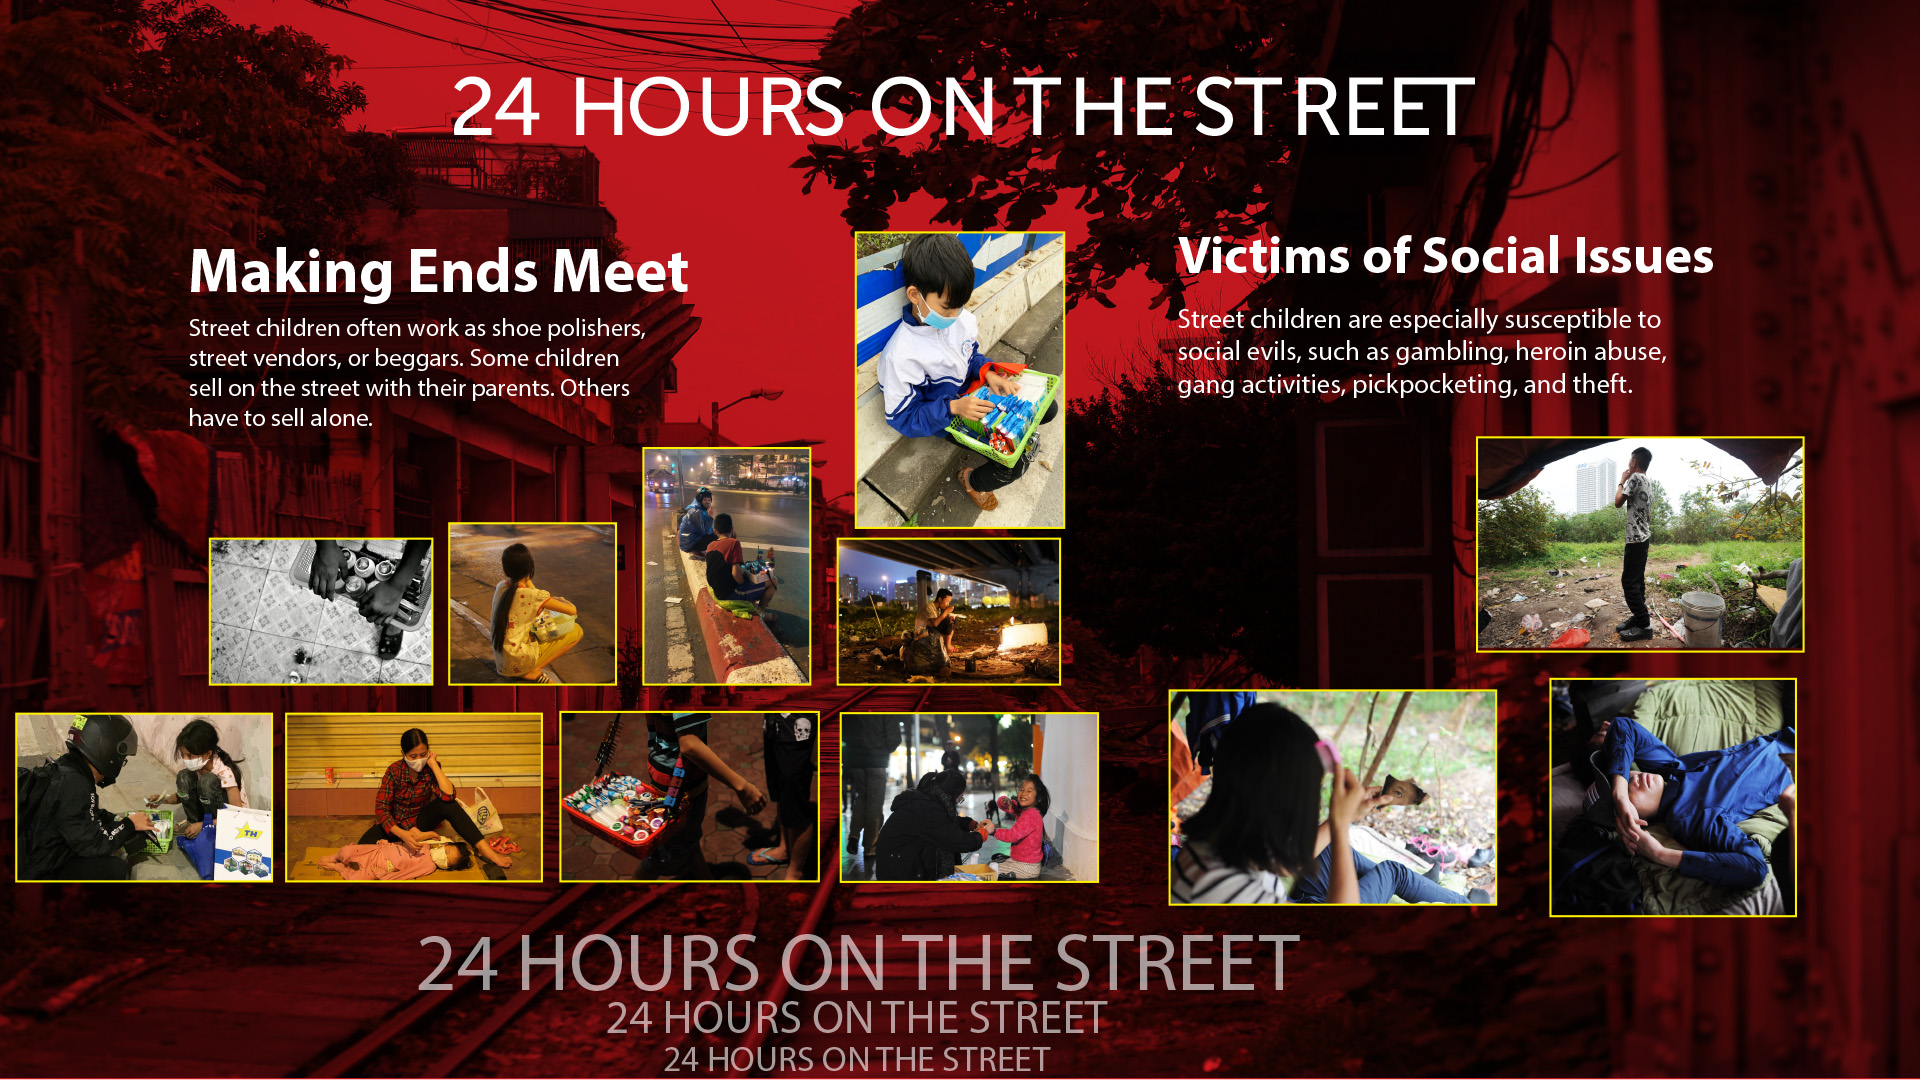 24 hours on the street